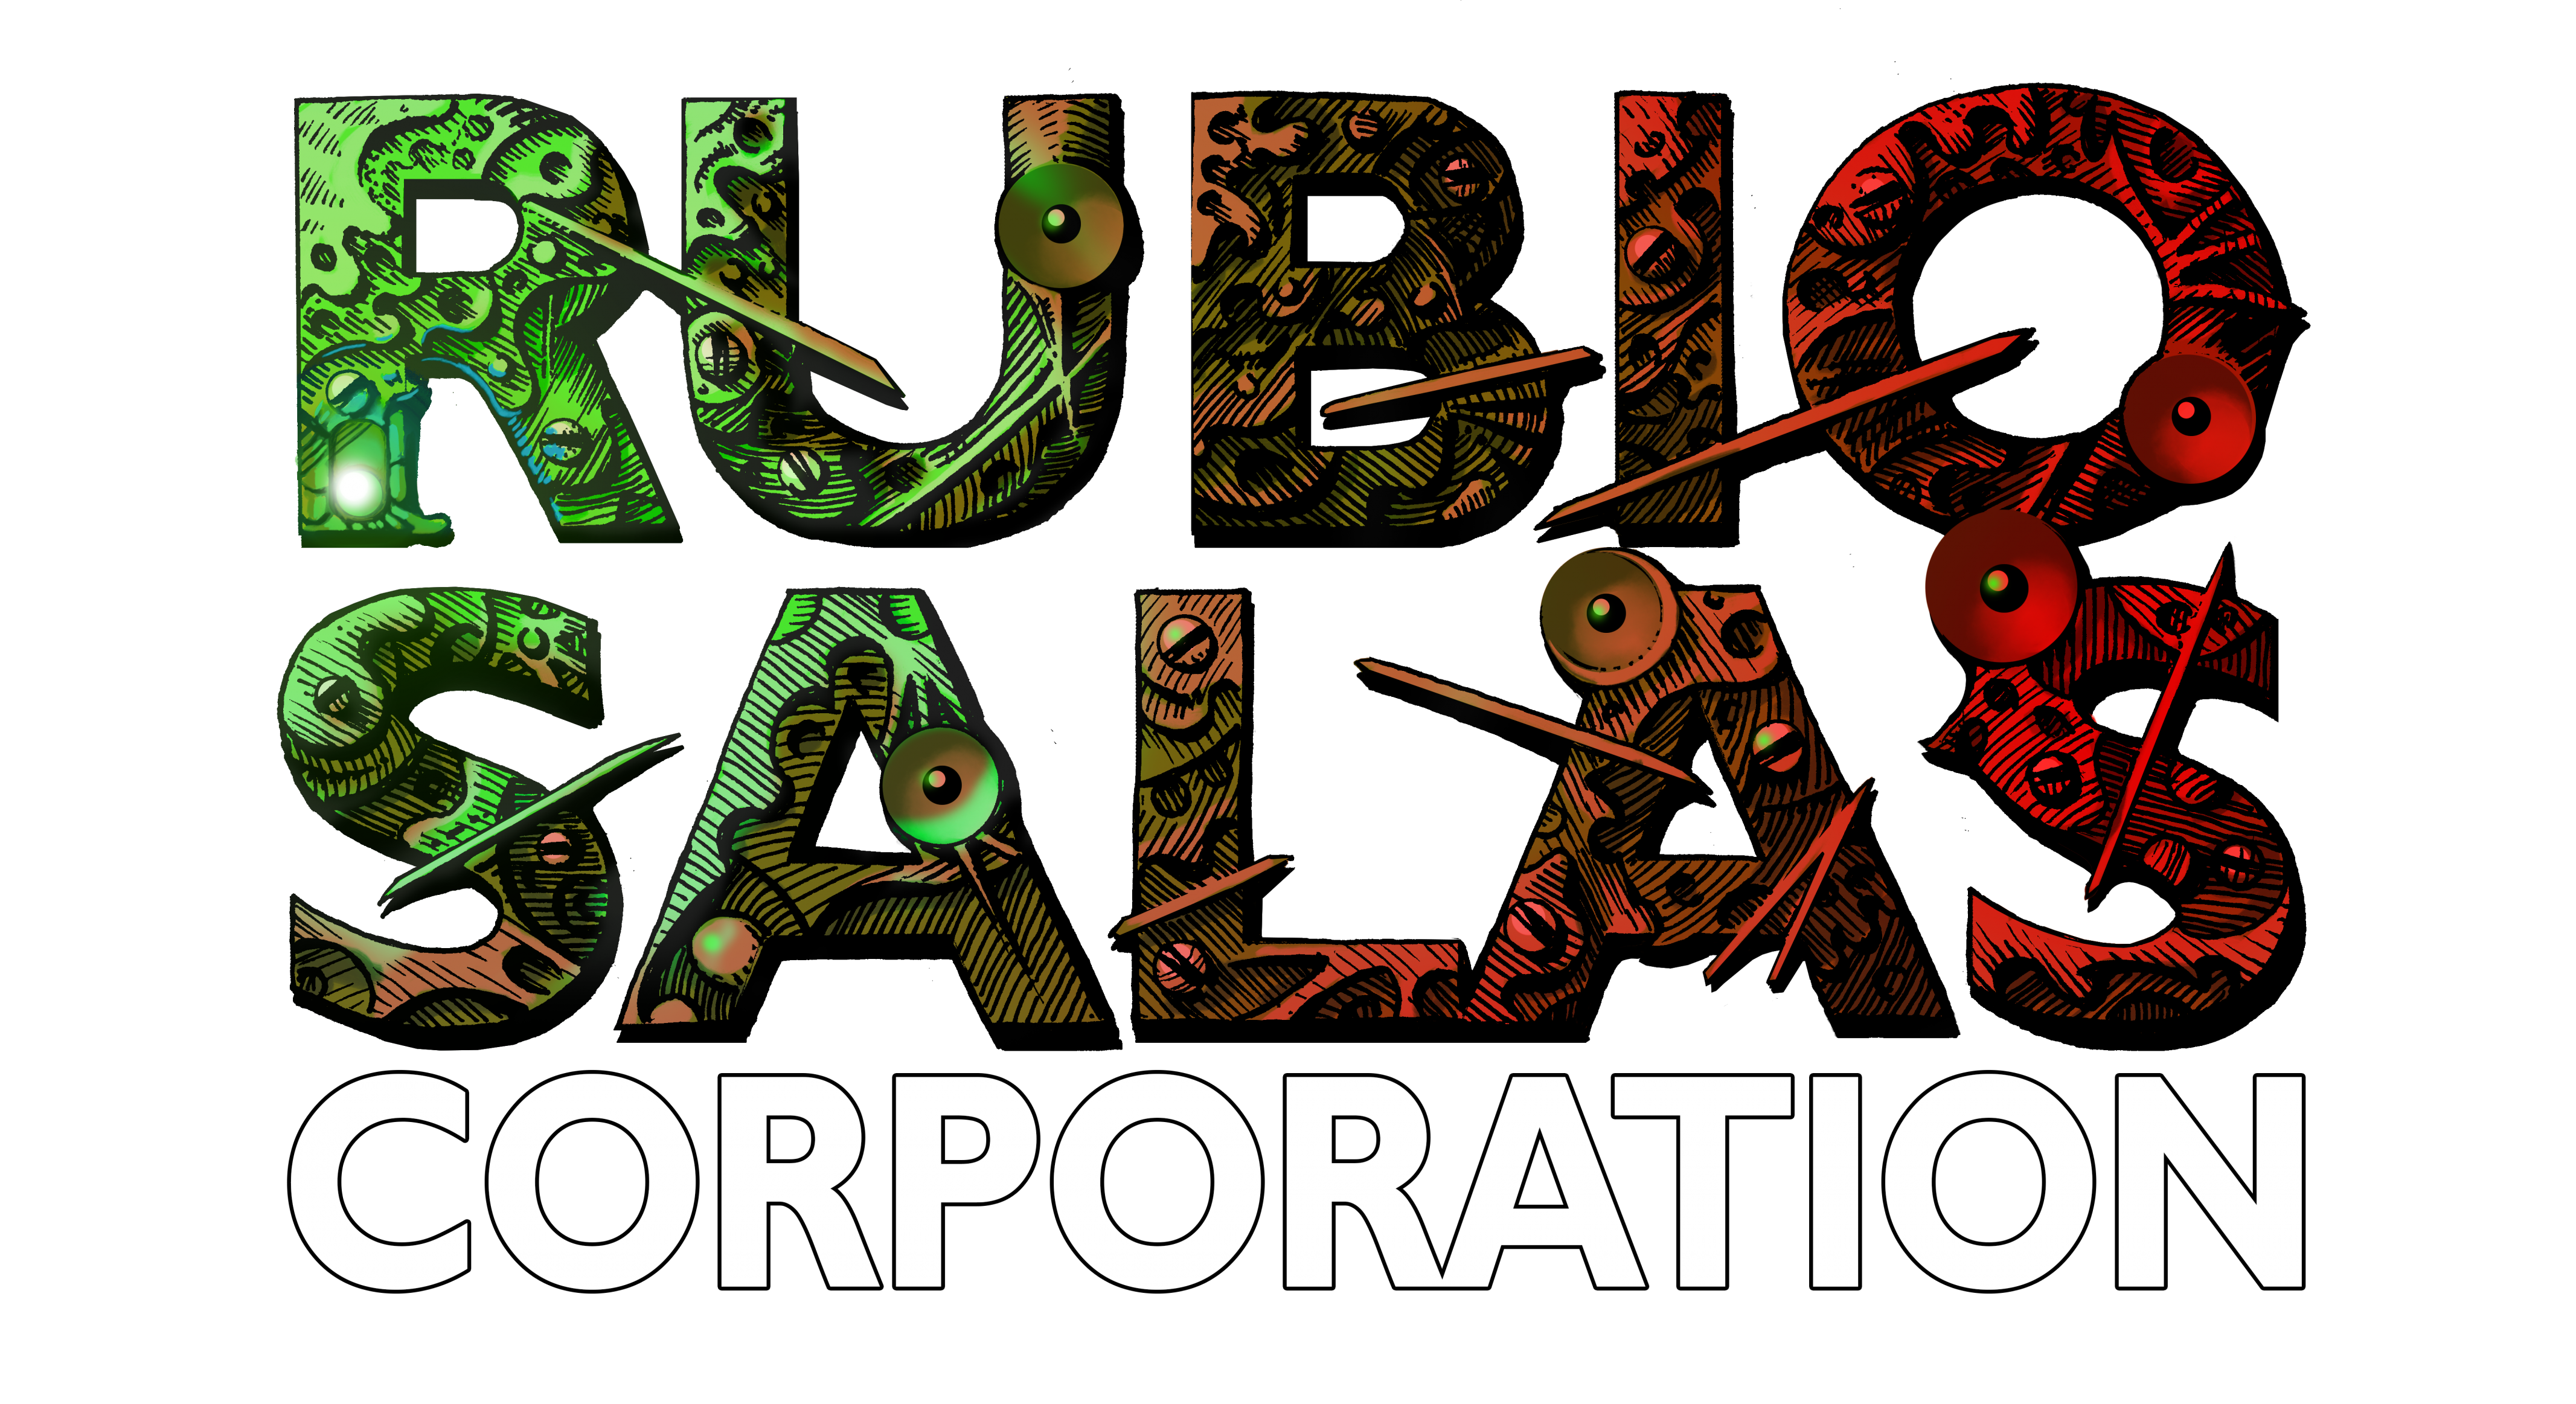 RUBIO SALAS CORPORATION